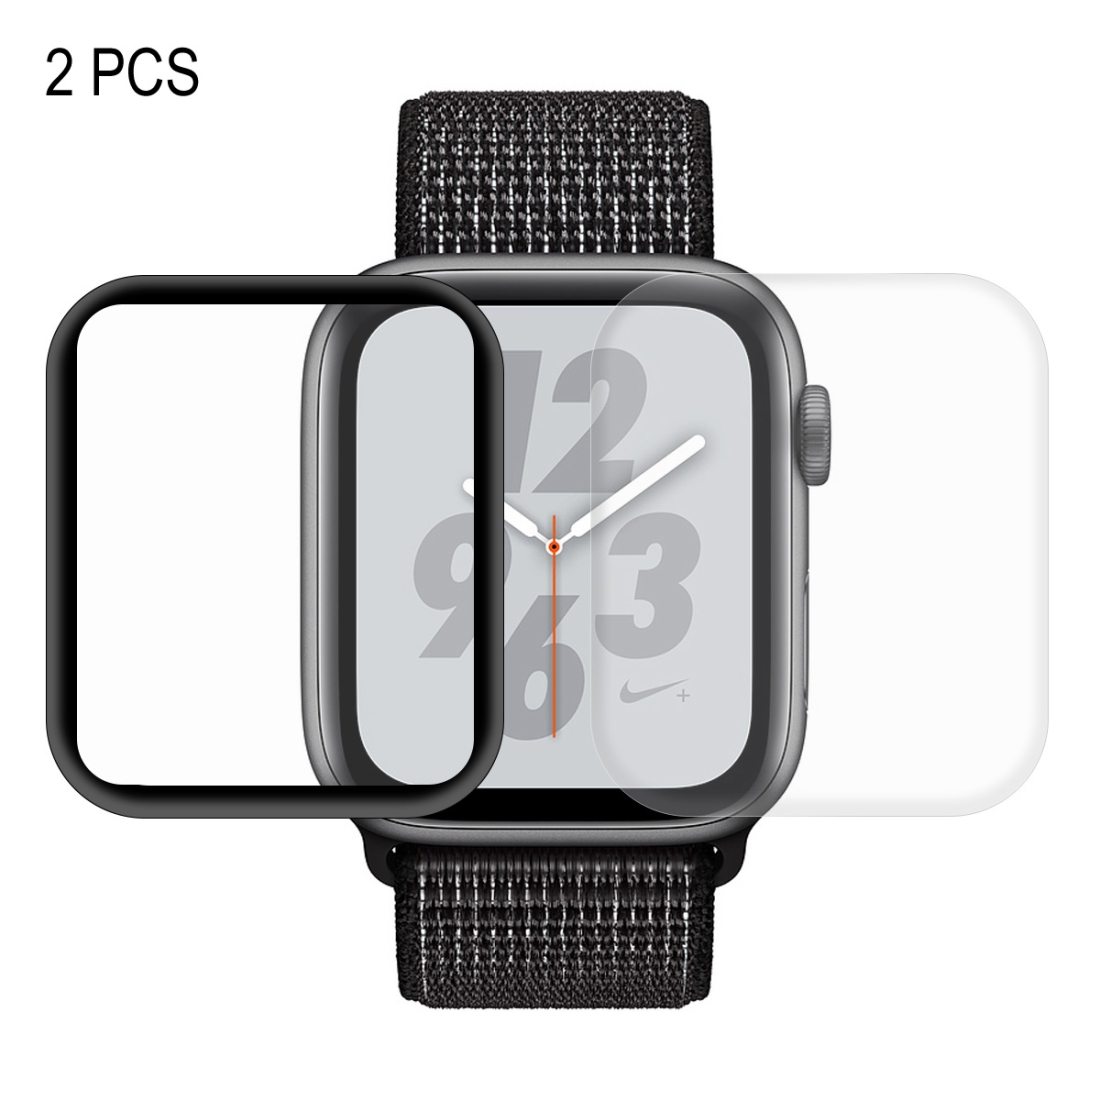 2 PCS ENKAY Hat-Prince 3D Full Screen PET + 3D Full Screen Electroplating PET Curved Heat Bending HD Screen Protector for Apple Watch Series 4 44mm